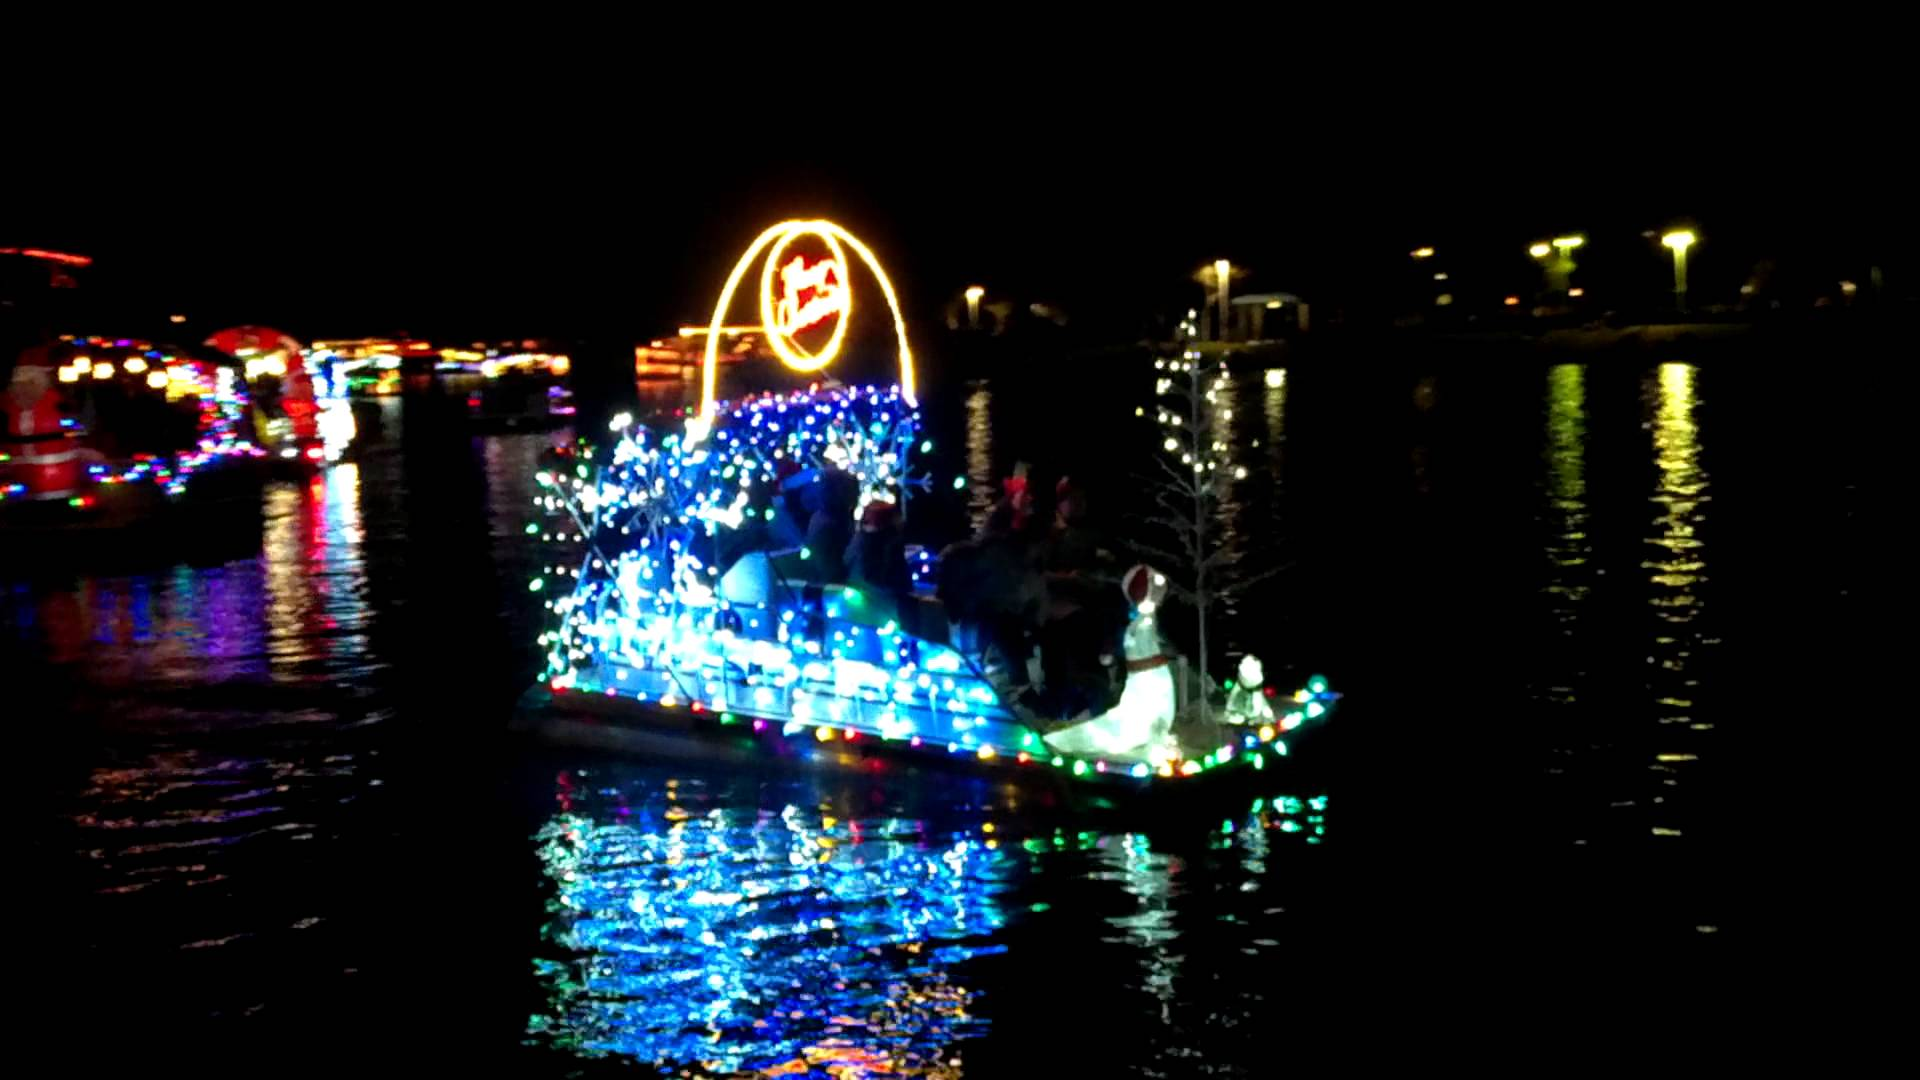 Electric boat on display at the Islands in Gilbert, AZ during Christmas Boat Parade